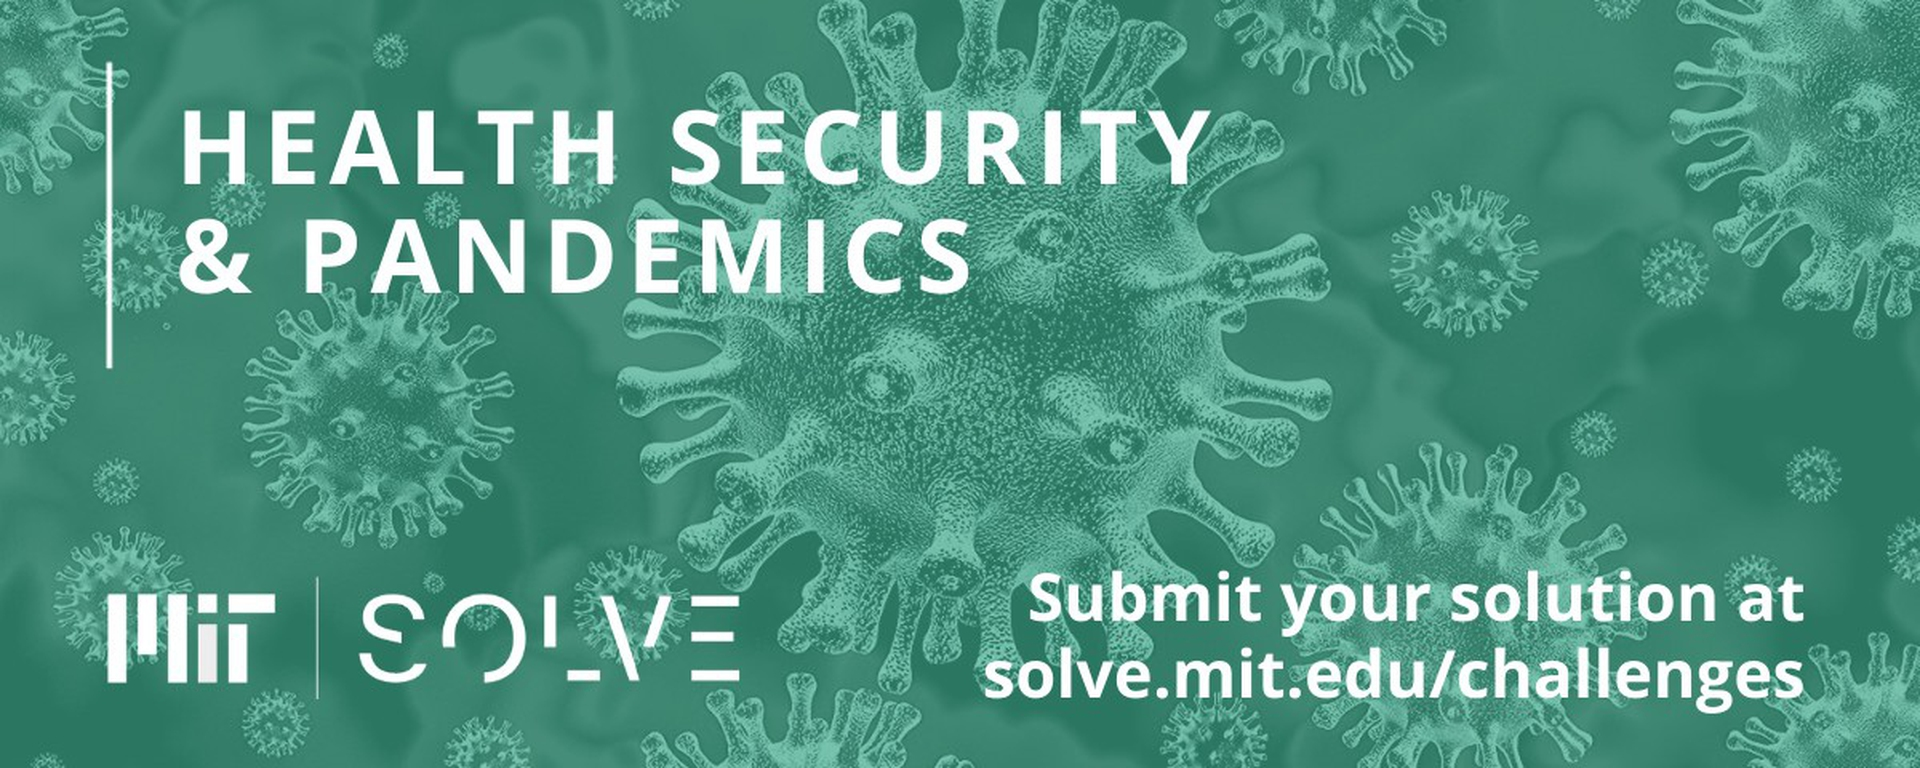 Solve - MIT - Healthy Security and Pandemics Challenge Movemeback African initiative cover image